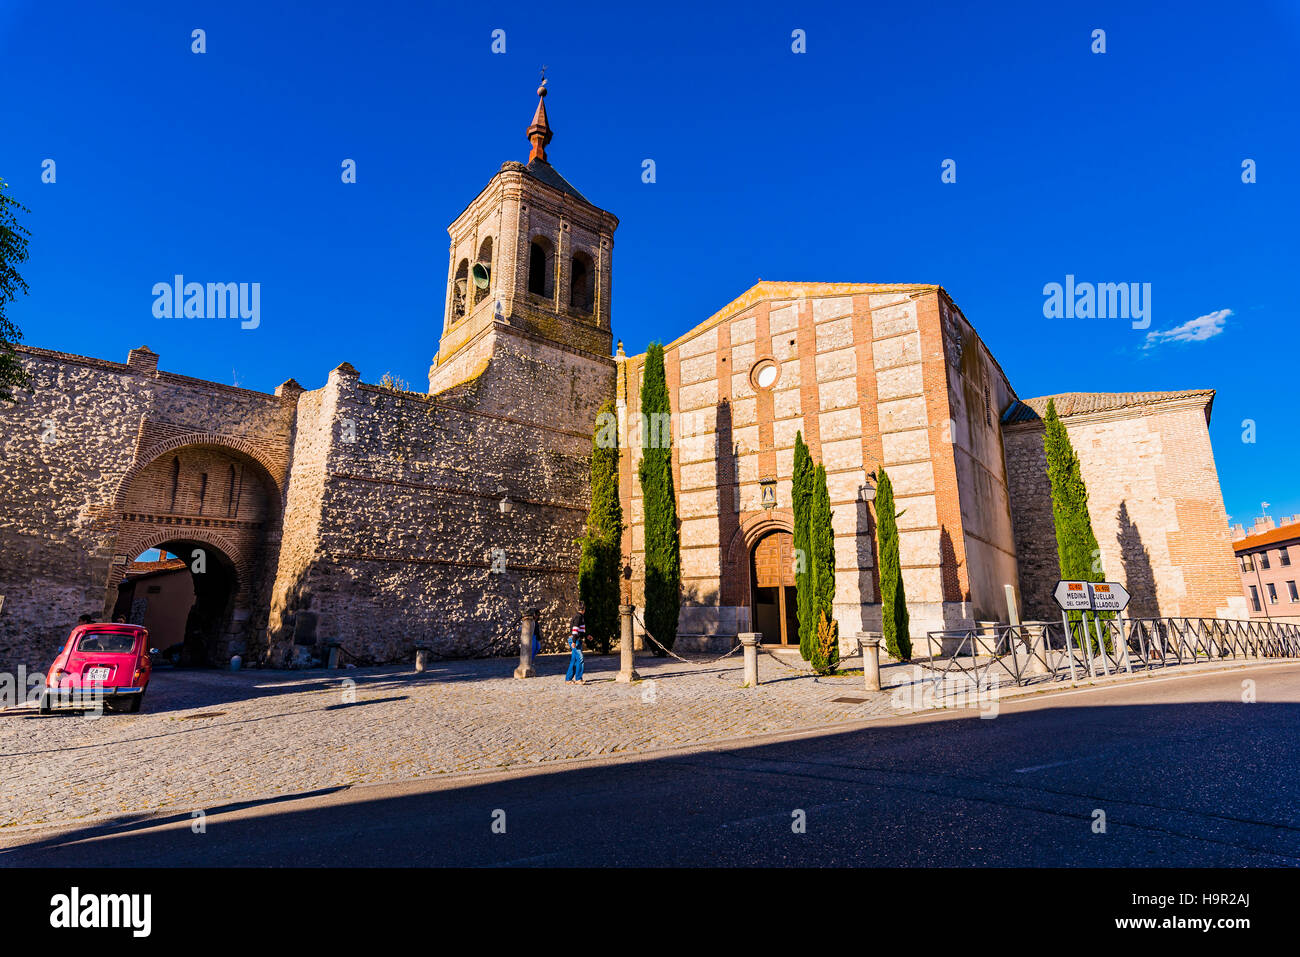 Notable Architecture church of san miguel, notable example of mudejar architecture and